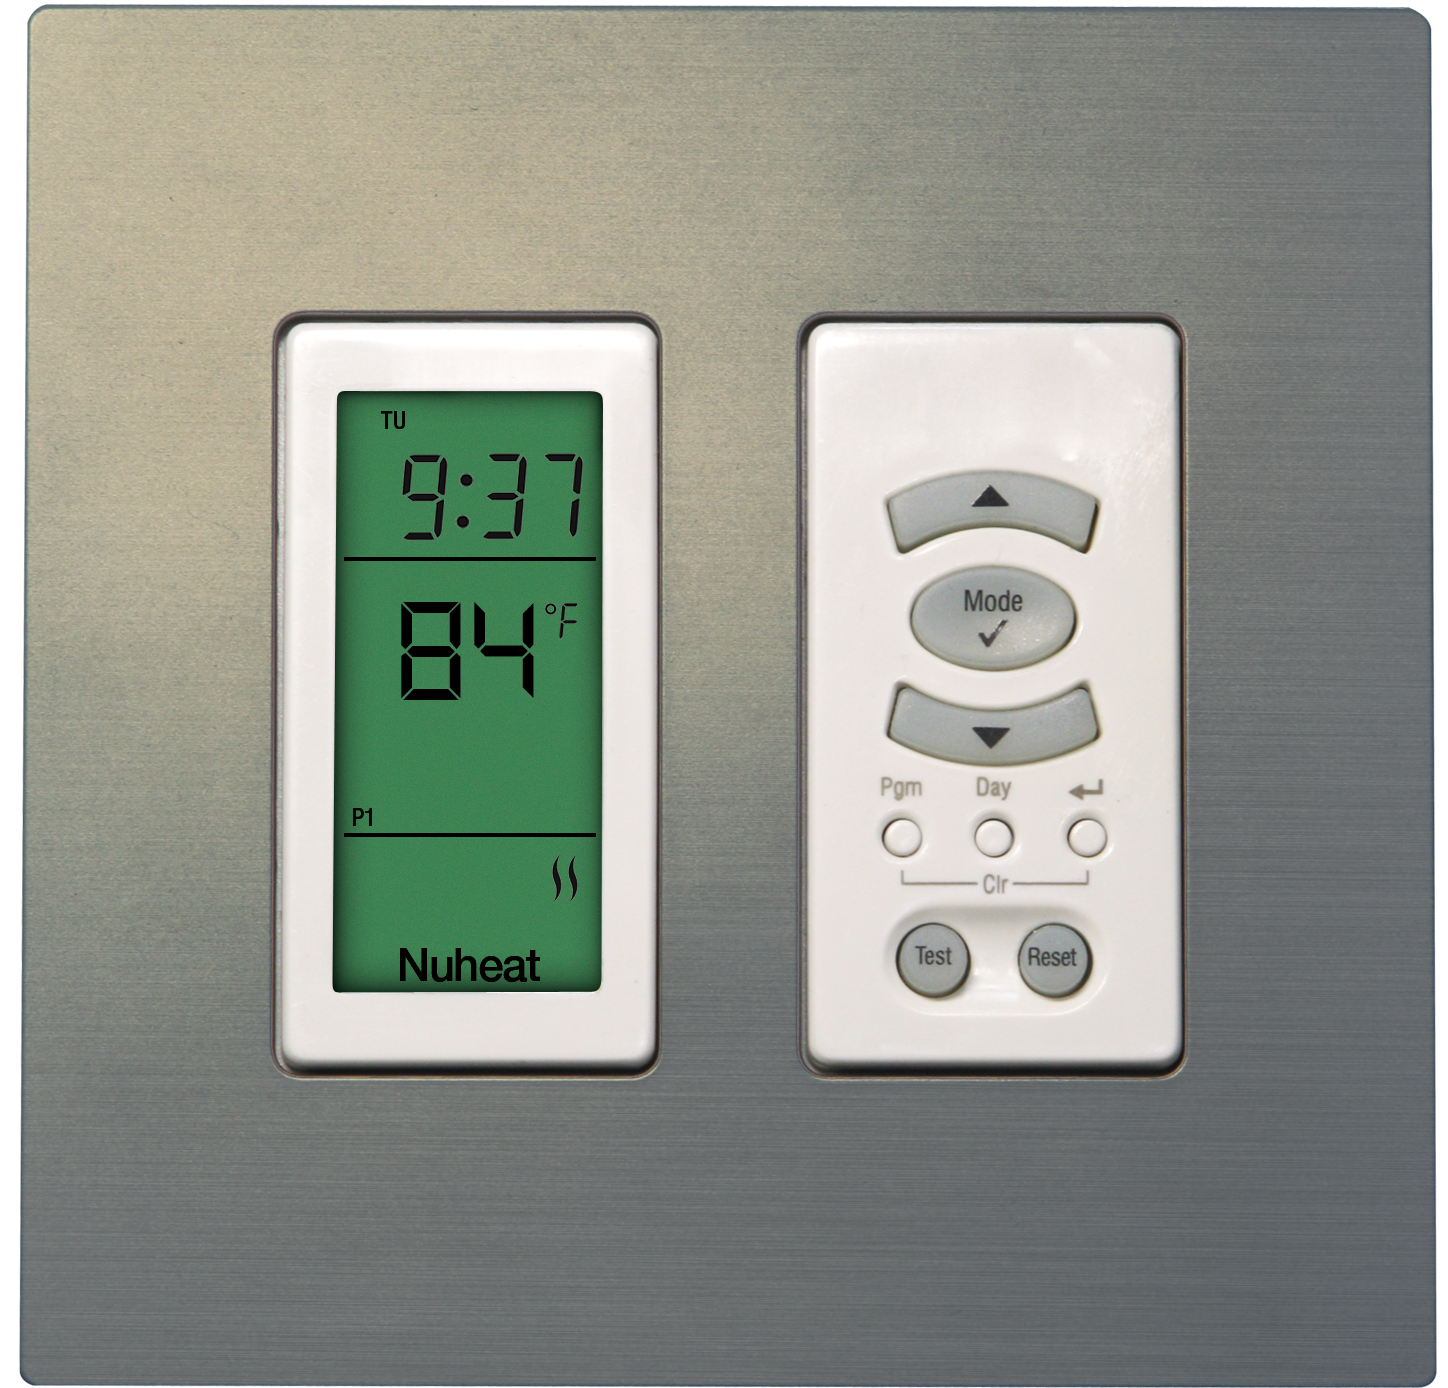 harmony w stealfaceplate 2015?sfvrsn=2 past models nuheat home thermostat wiring diagram at highcare.asia